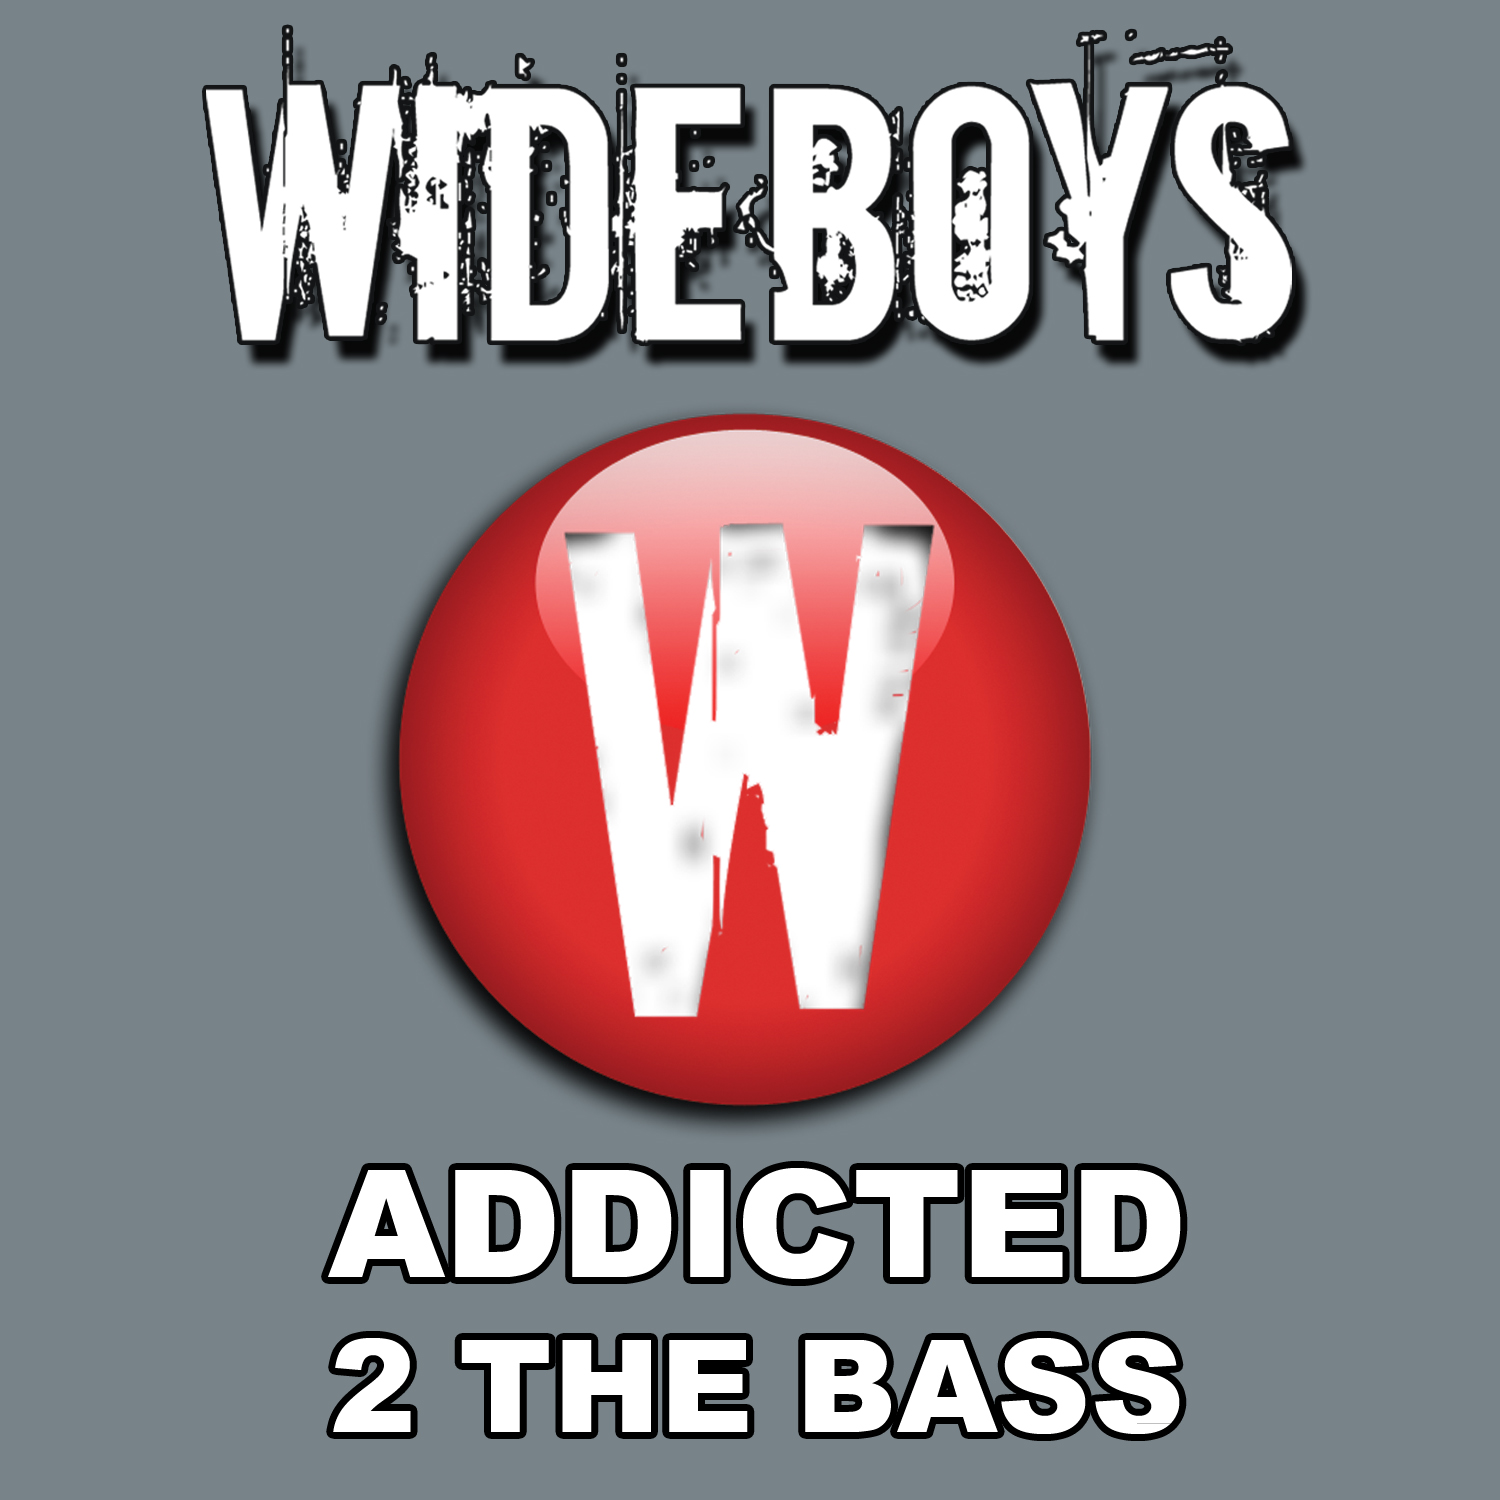 Wideboys – Addicted 2 The Bass (Stadium's House Mix)